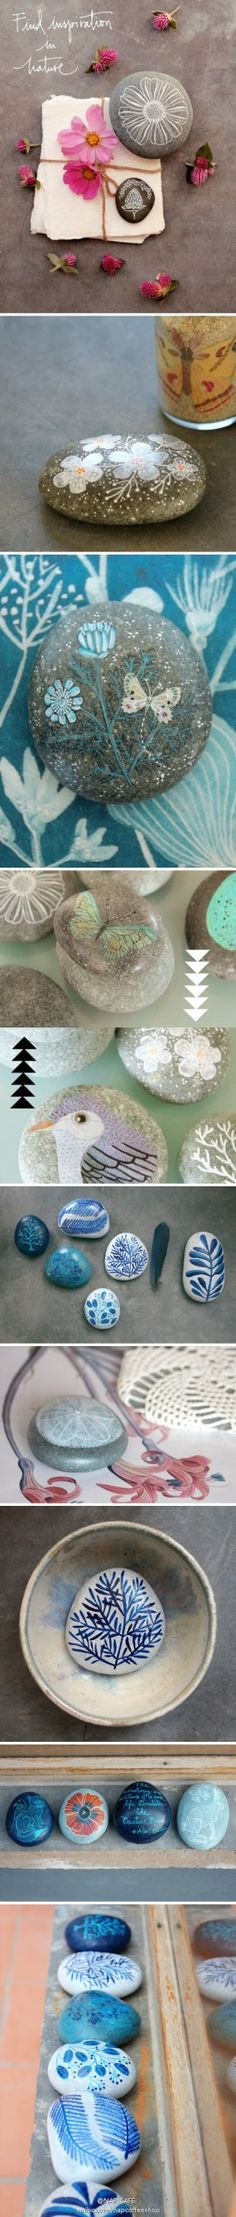 More painted rocks